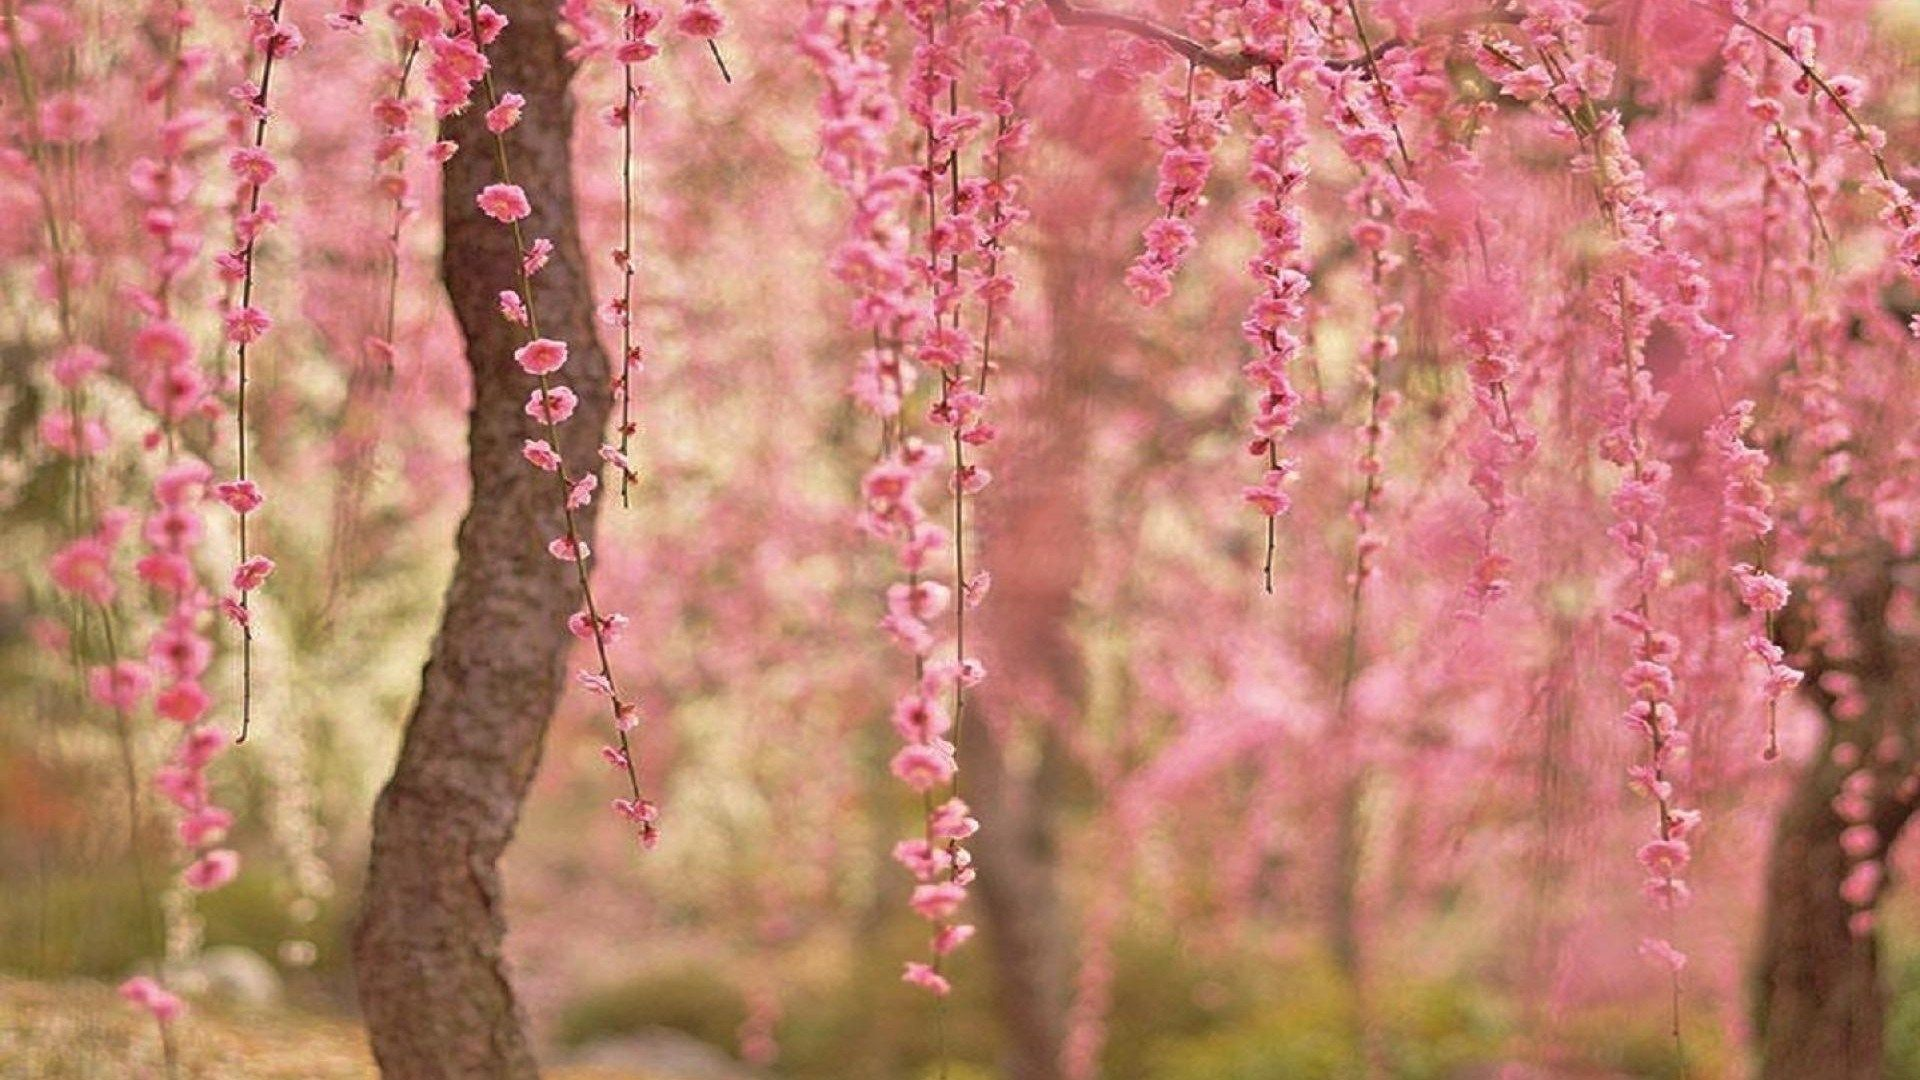 spring cherry blossoms wallpaper hd sharovarka pinterest cherry blossom wallpaper cherry blossoms and blossoms